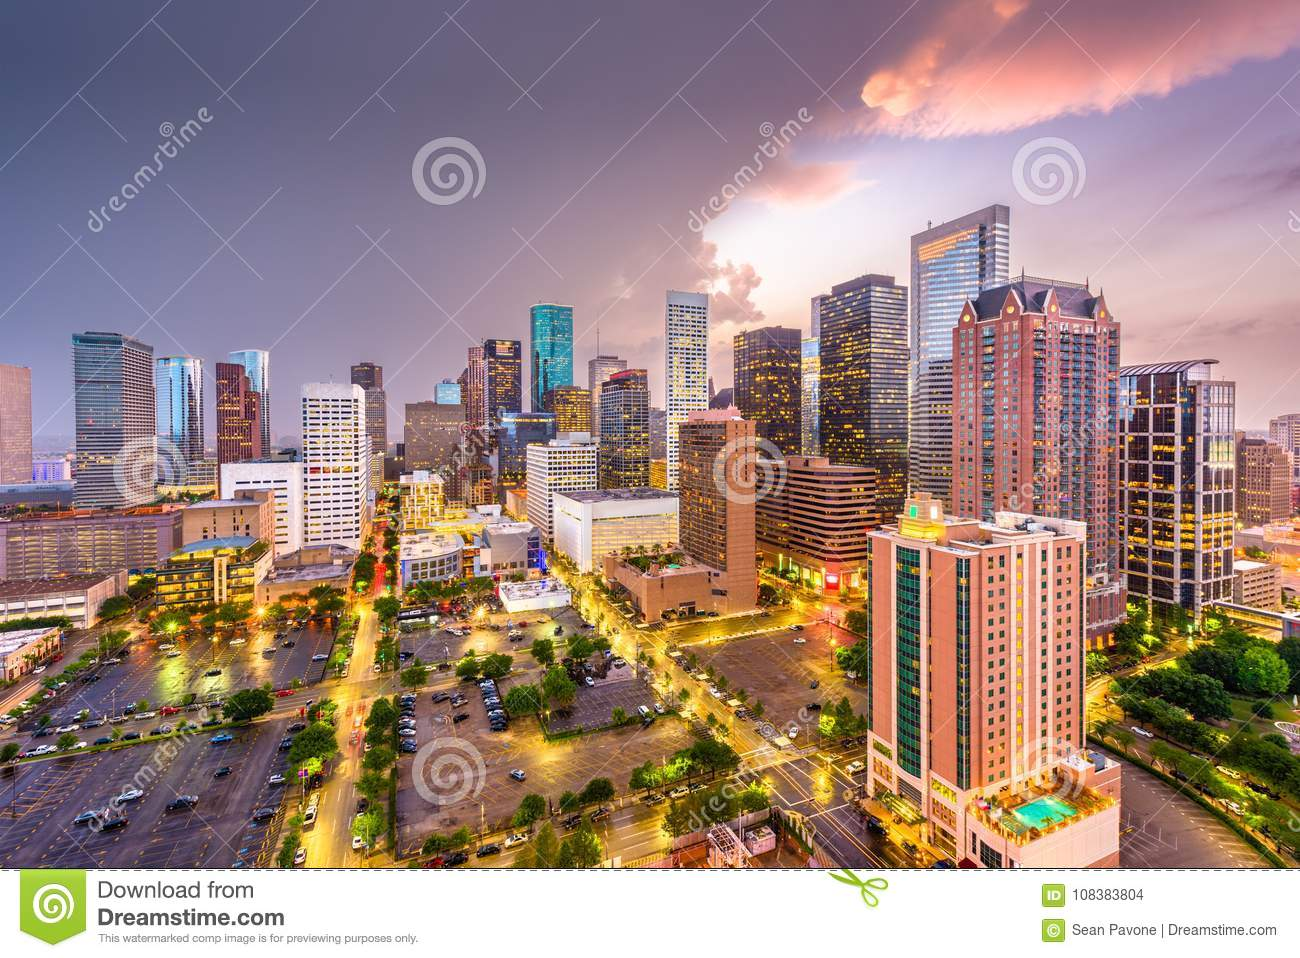 Houston, Texas, EUA